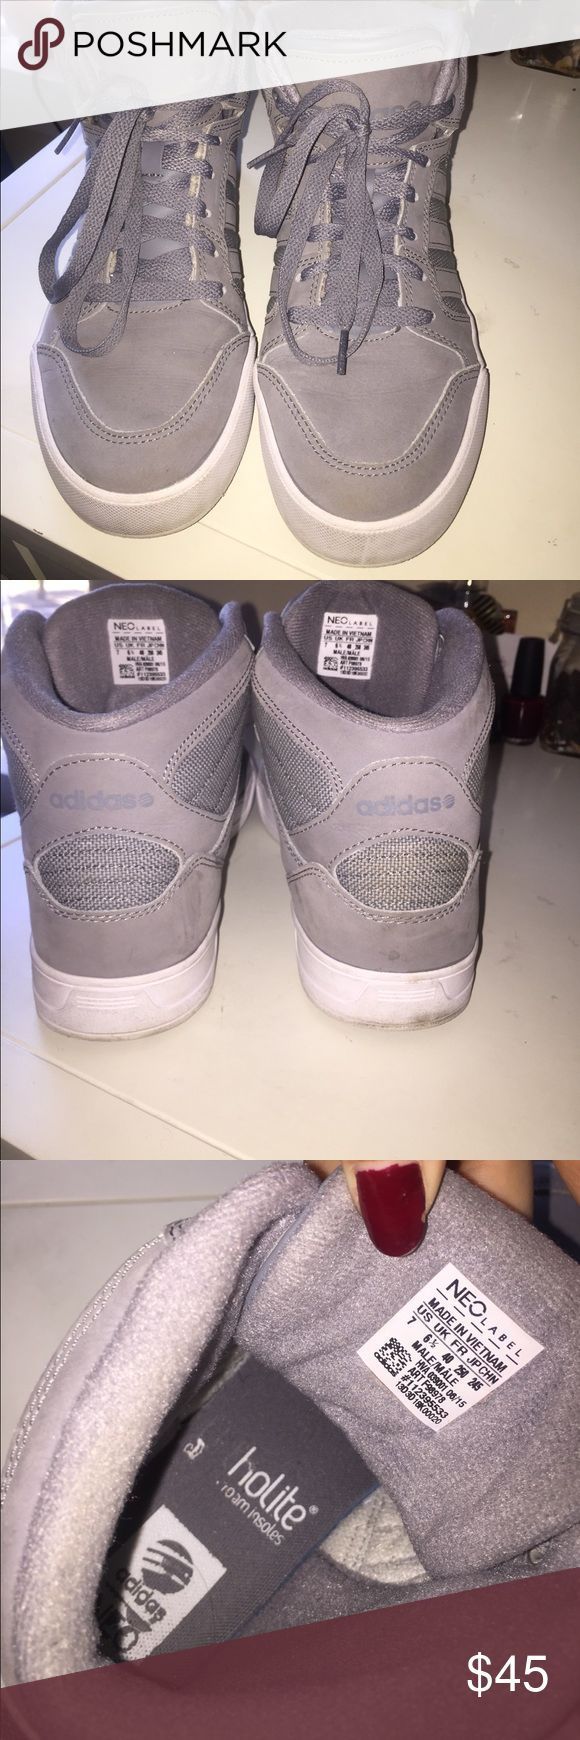 Light grey adidas neo high top Cute adidas neo sneakers for the gym or just casual gym wear! Men's size 7, but I am a women 8 and these fit great. Ortholite soles. These are worn in and still really comfortable! I don't wear them as much as I want that is why I am selling. adidas Shoes Sneakers